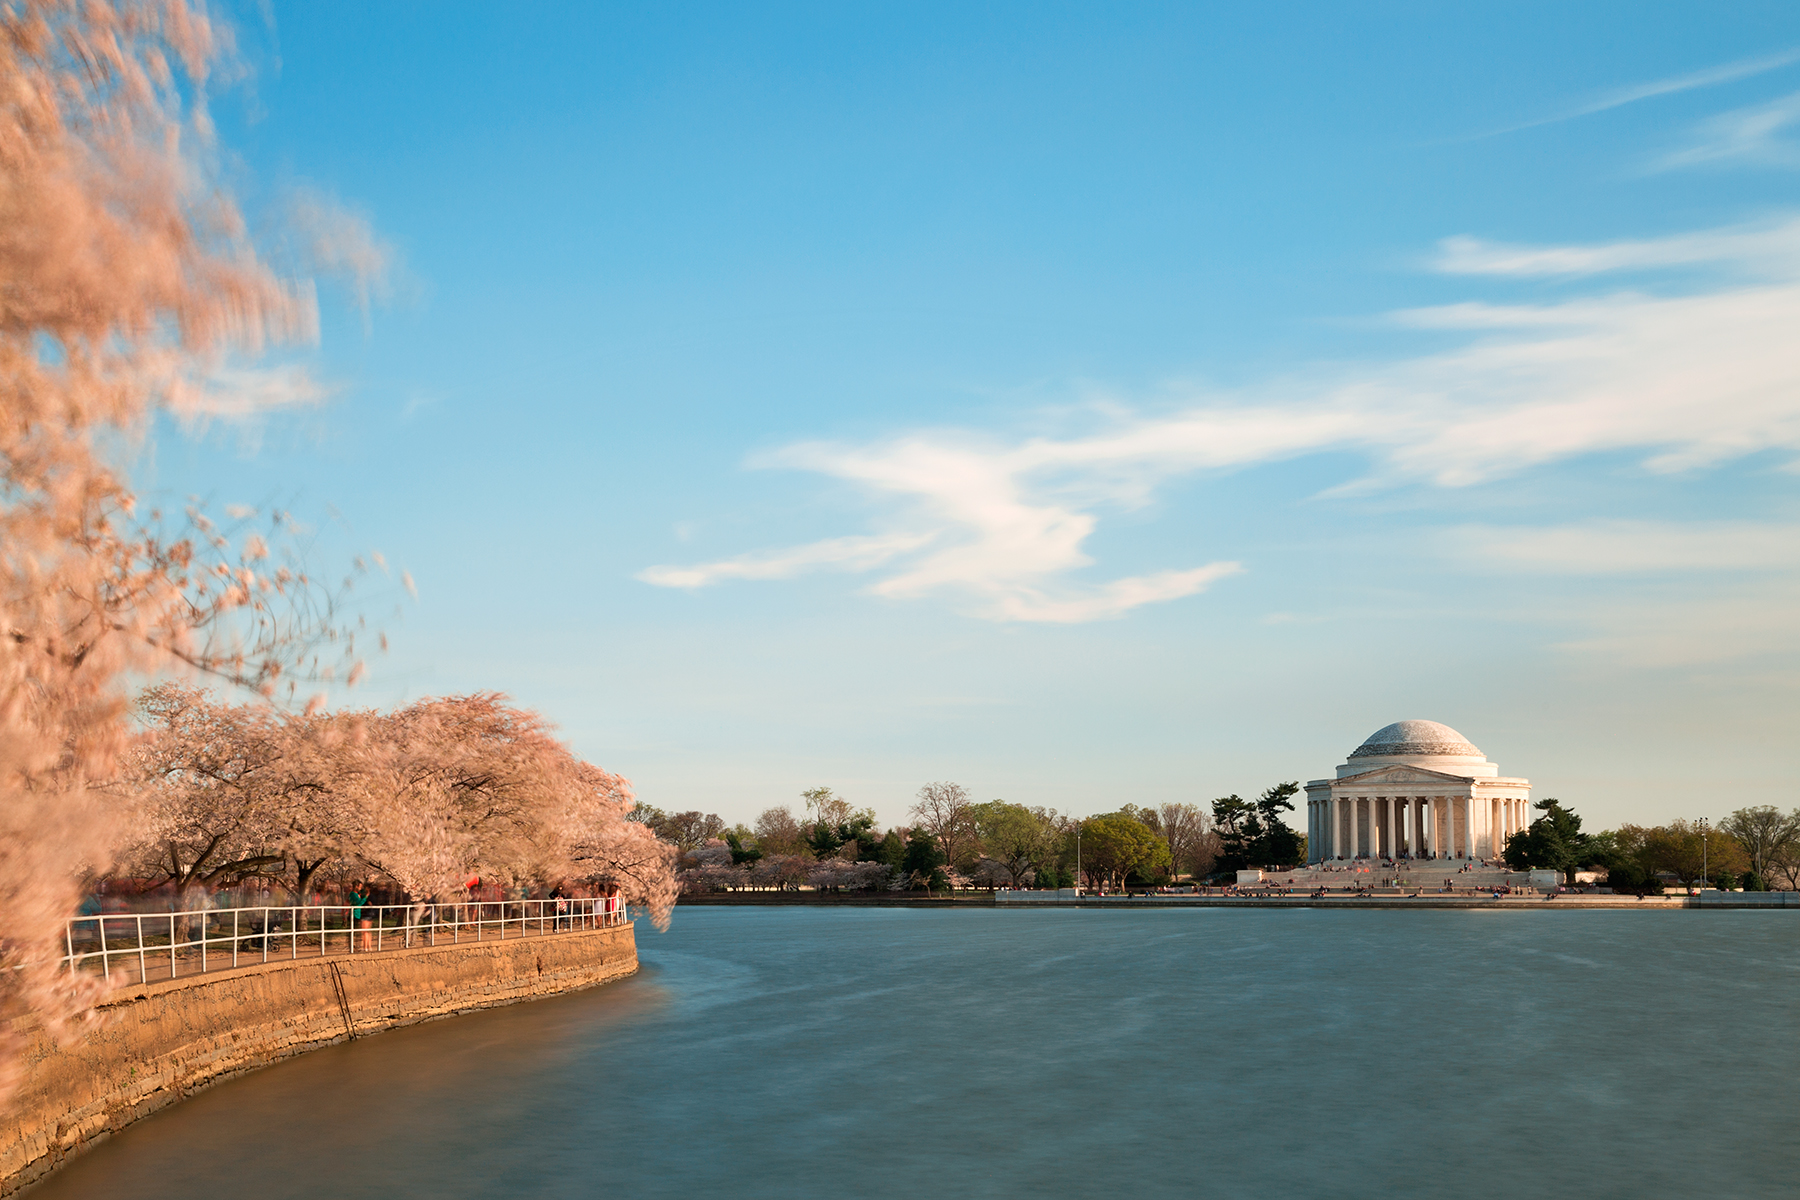 Windy cherry blossom basin photo